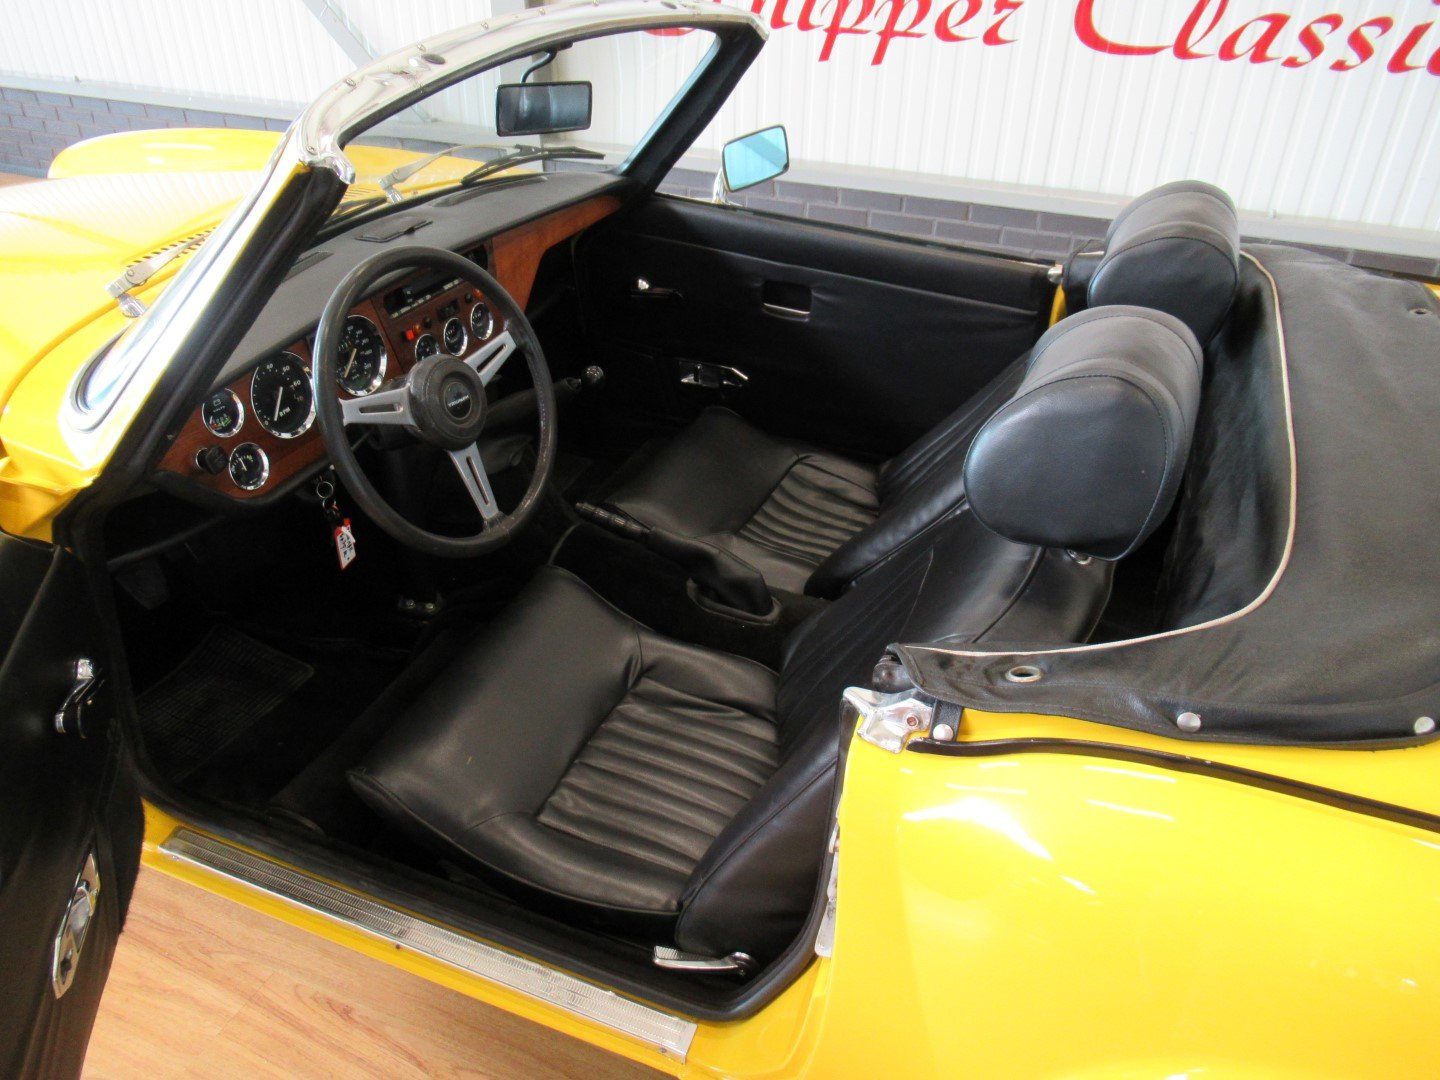 1973 Triumph Spitfire MK IV Roadster For Sale (picture 5 of 6)